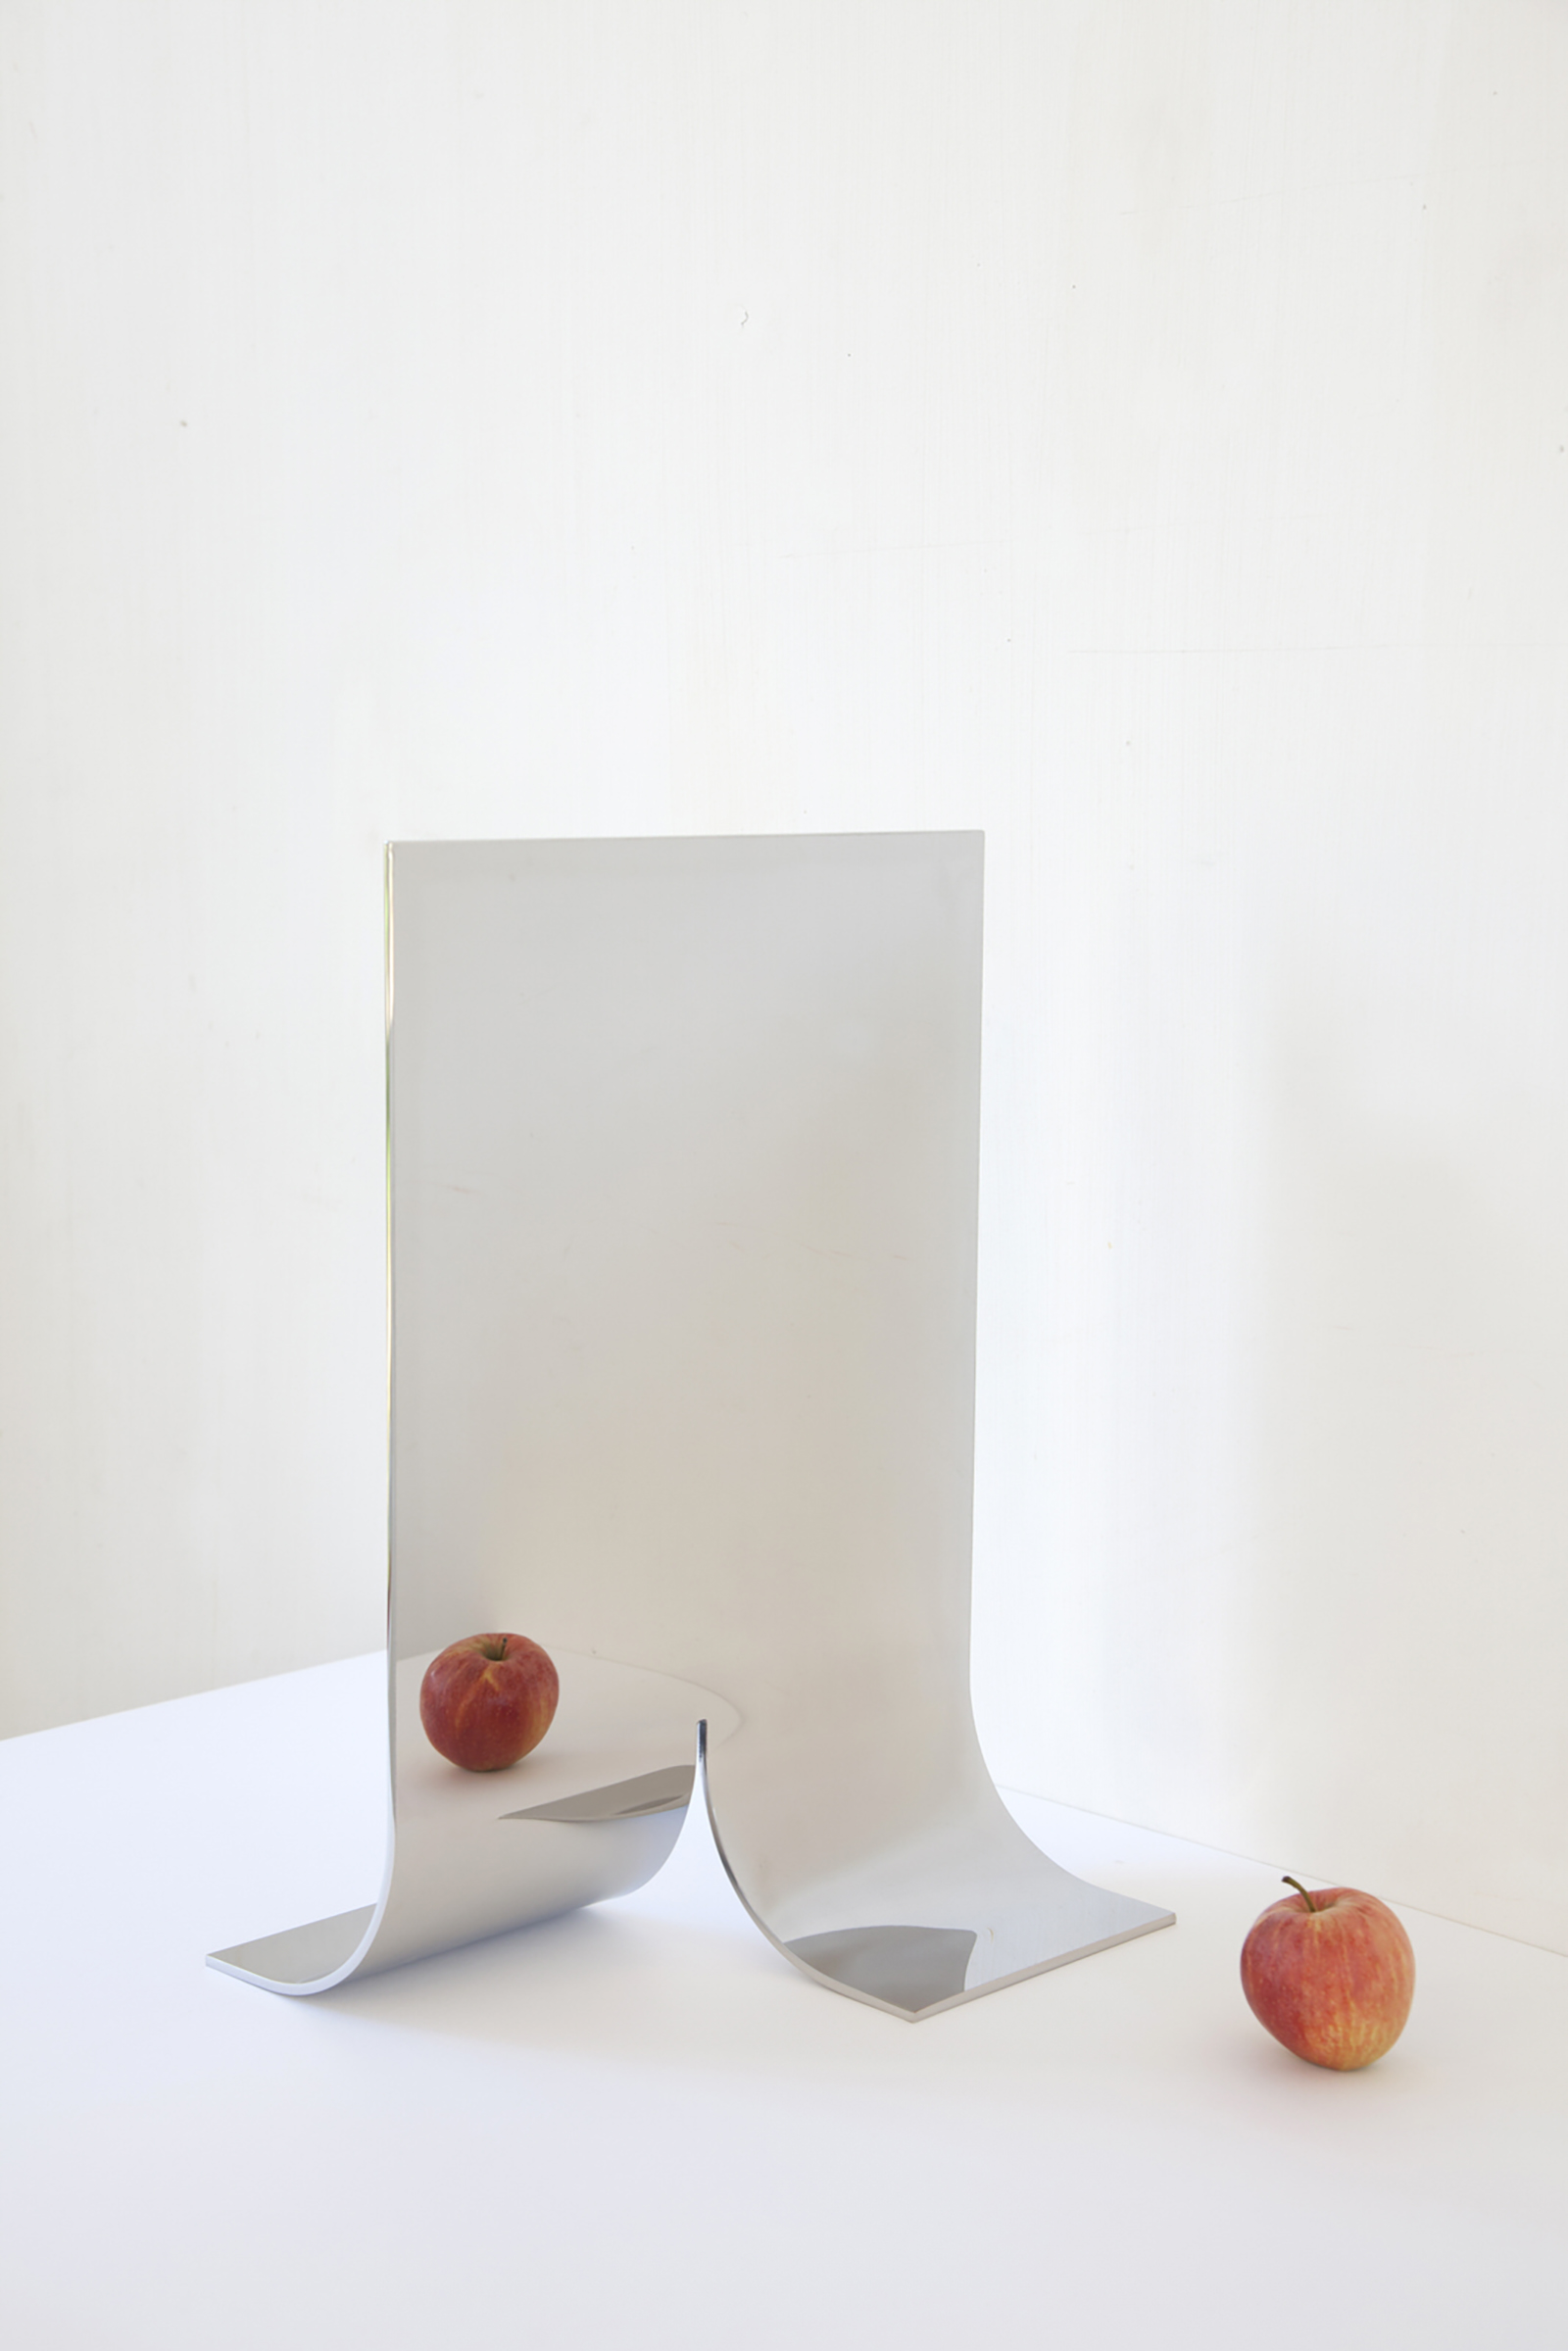 bended mirror #3